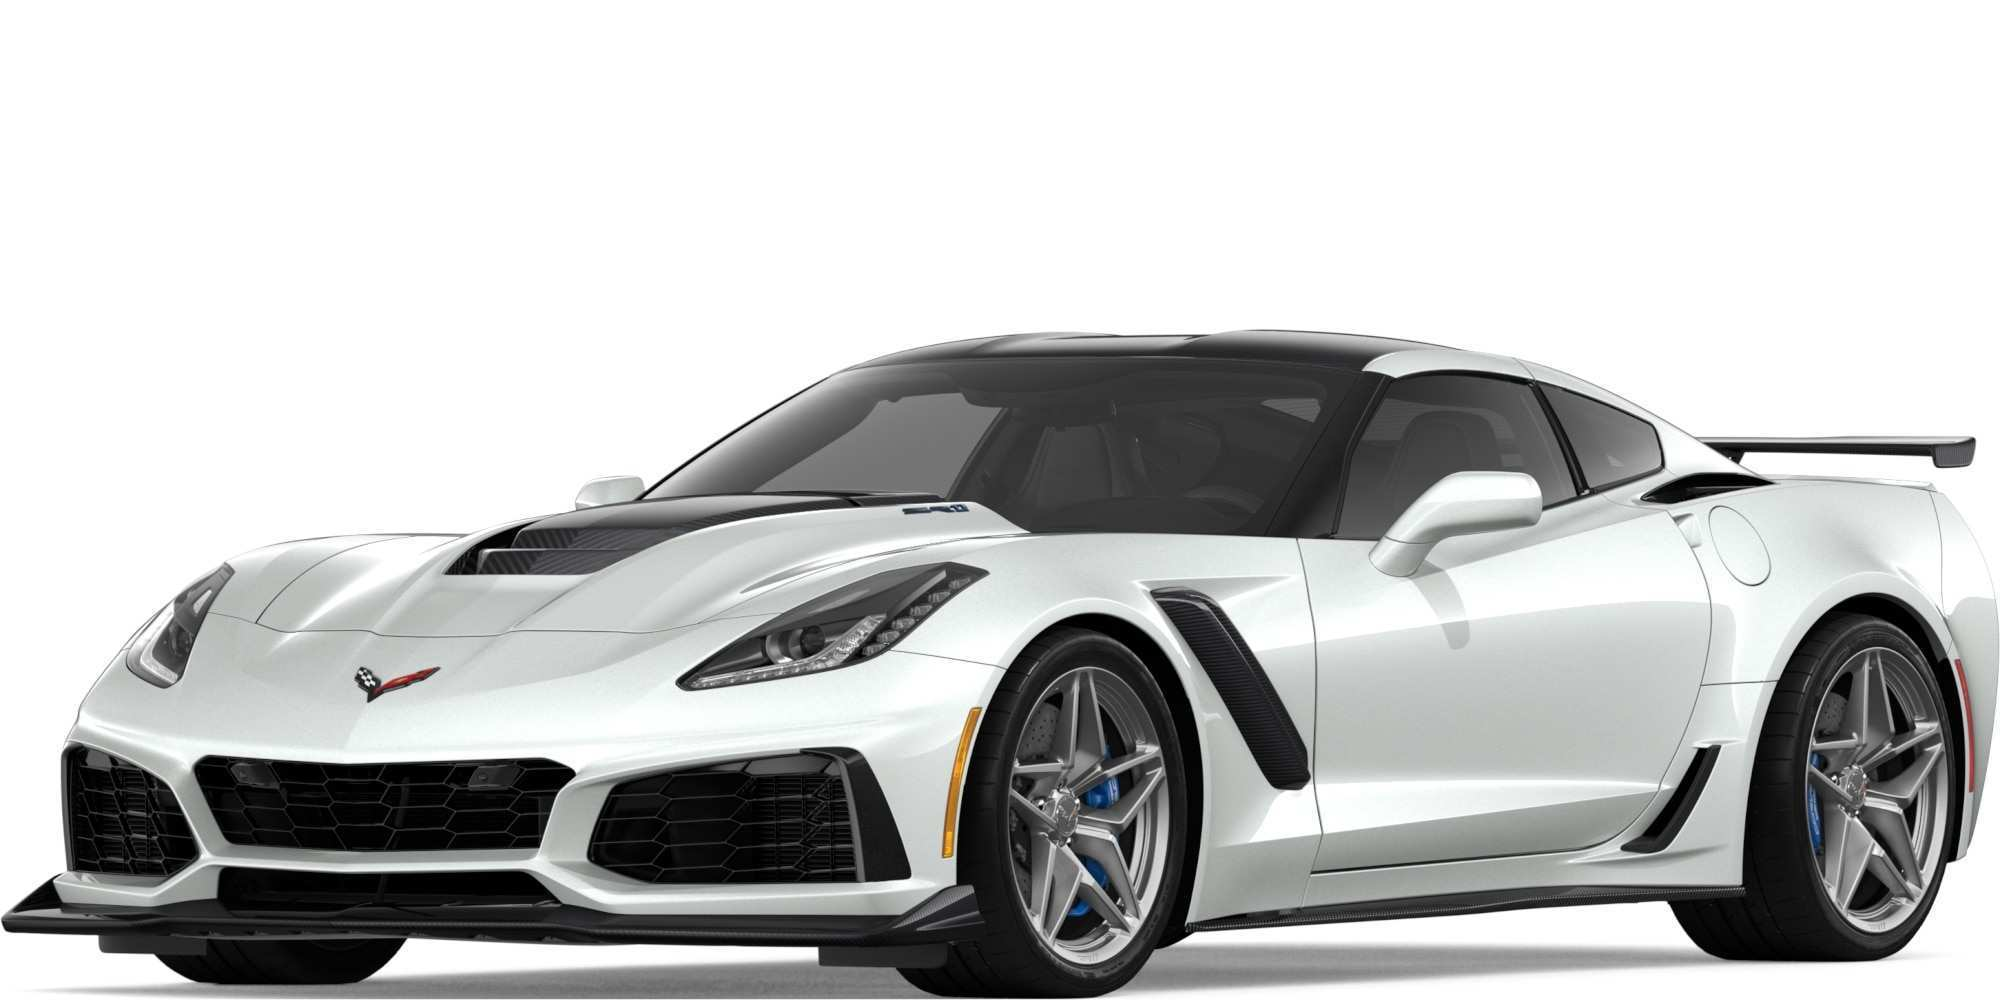 79 Best 2019 Chevrolet Corvette Zr1 Price Release Date And Concept